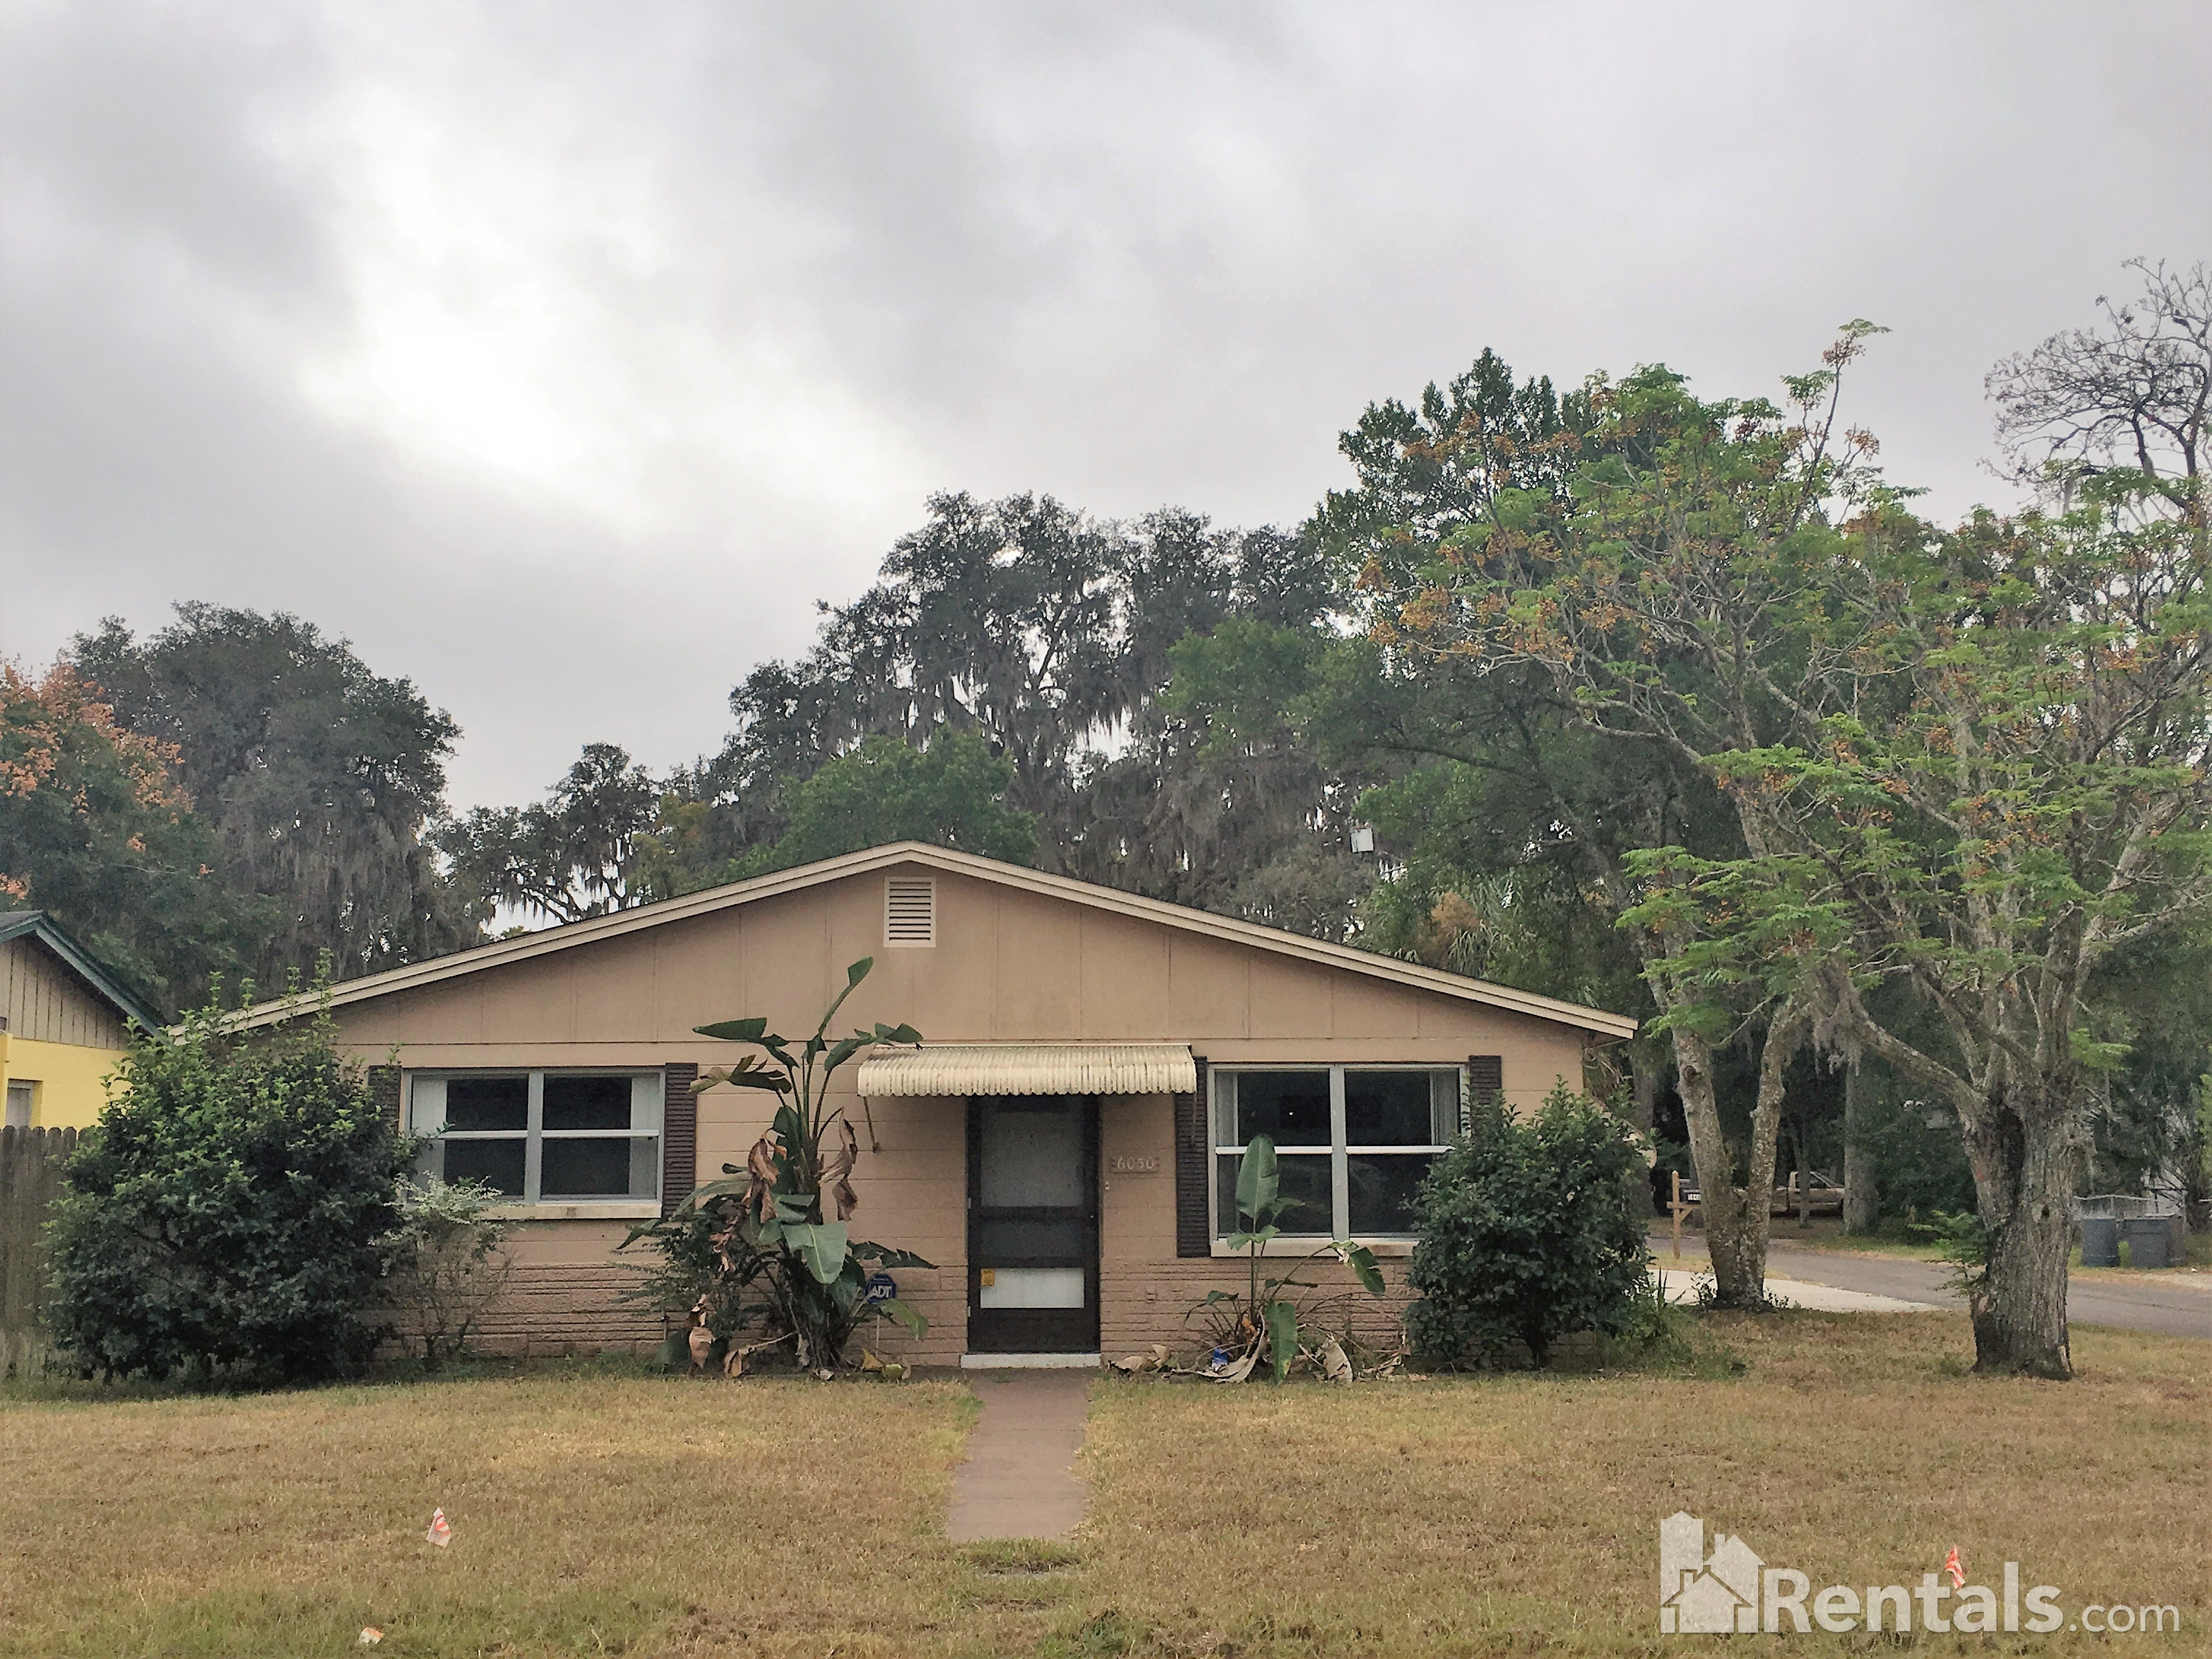 House for Rent in Town of New Port Richey